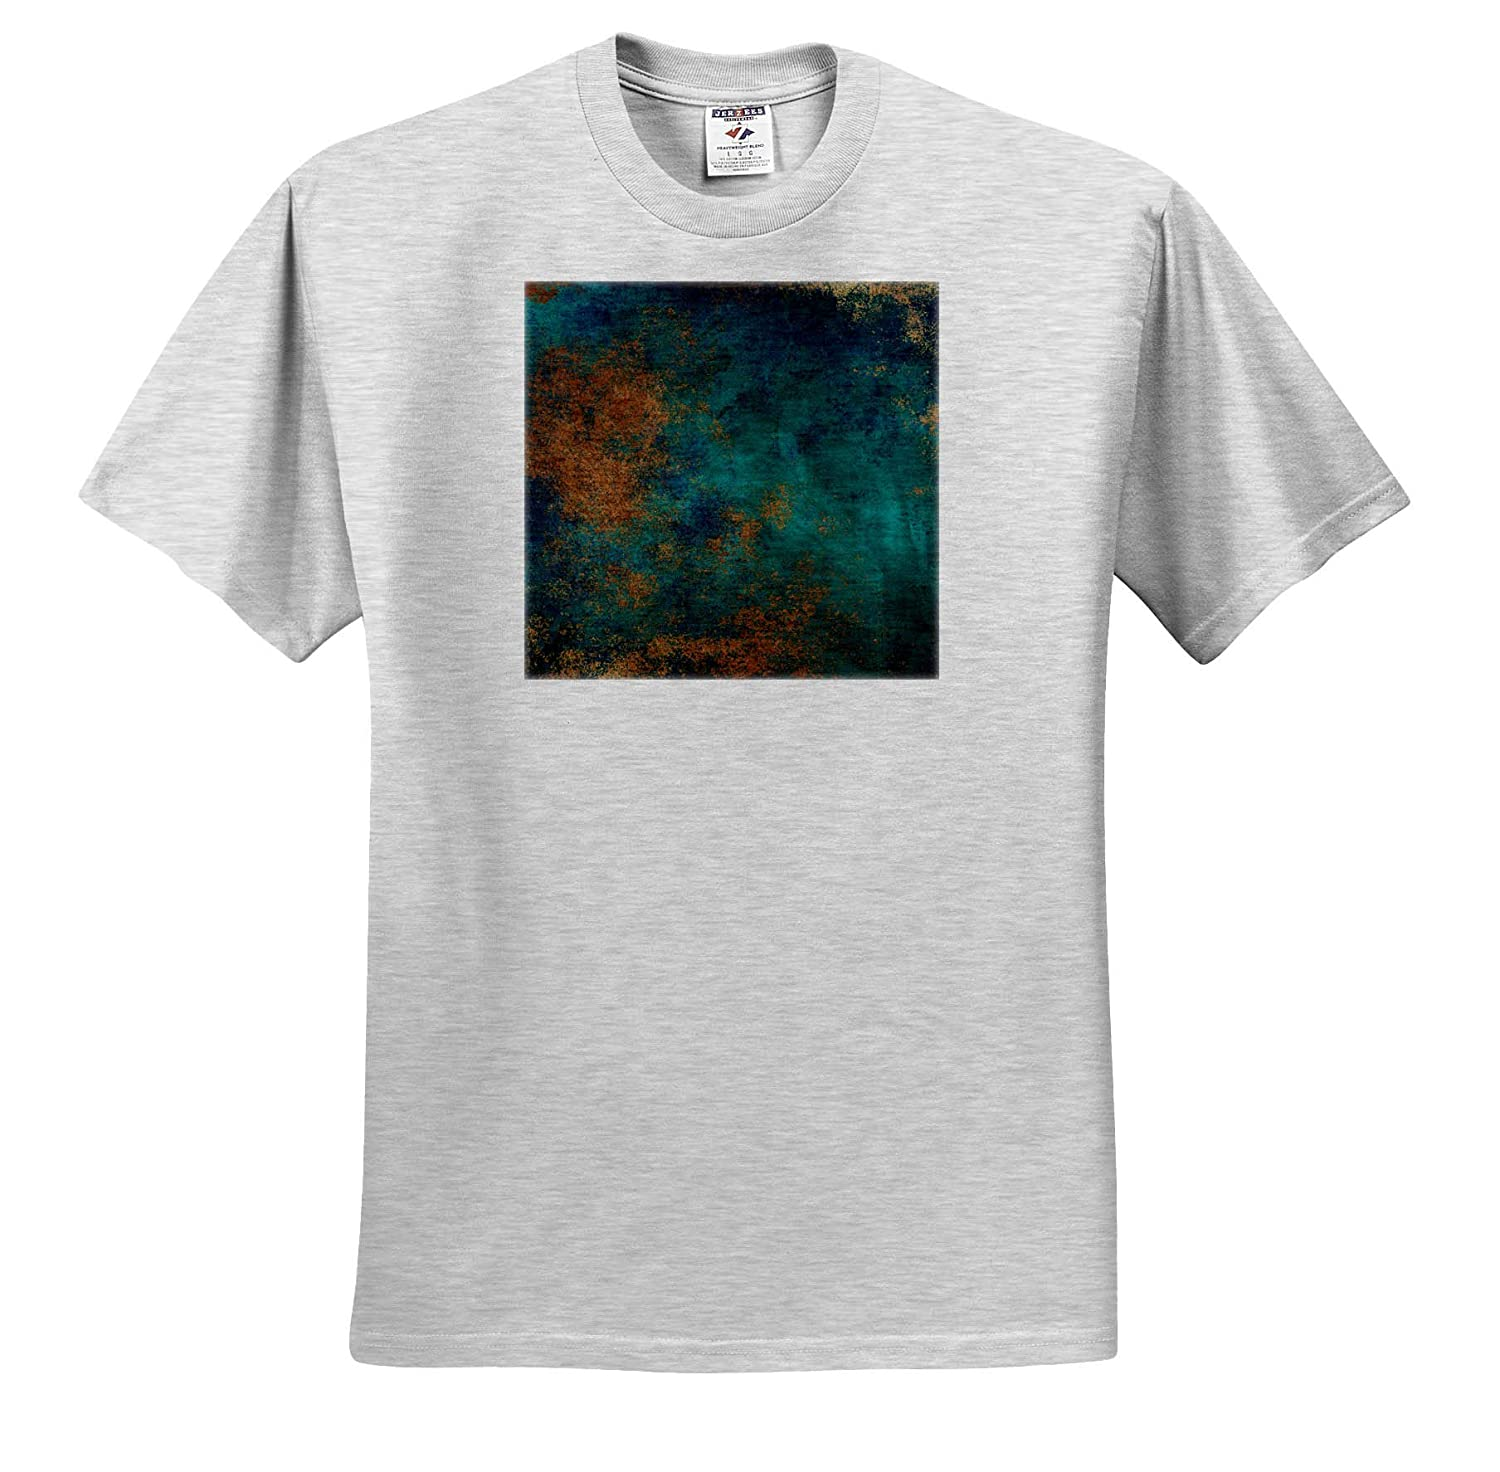 Adult T-Shirt XL Abstract ts/_316248 Teal and Image of Copper Abstract 3dRose Anne Marie Baugh